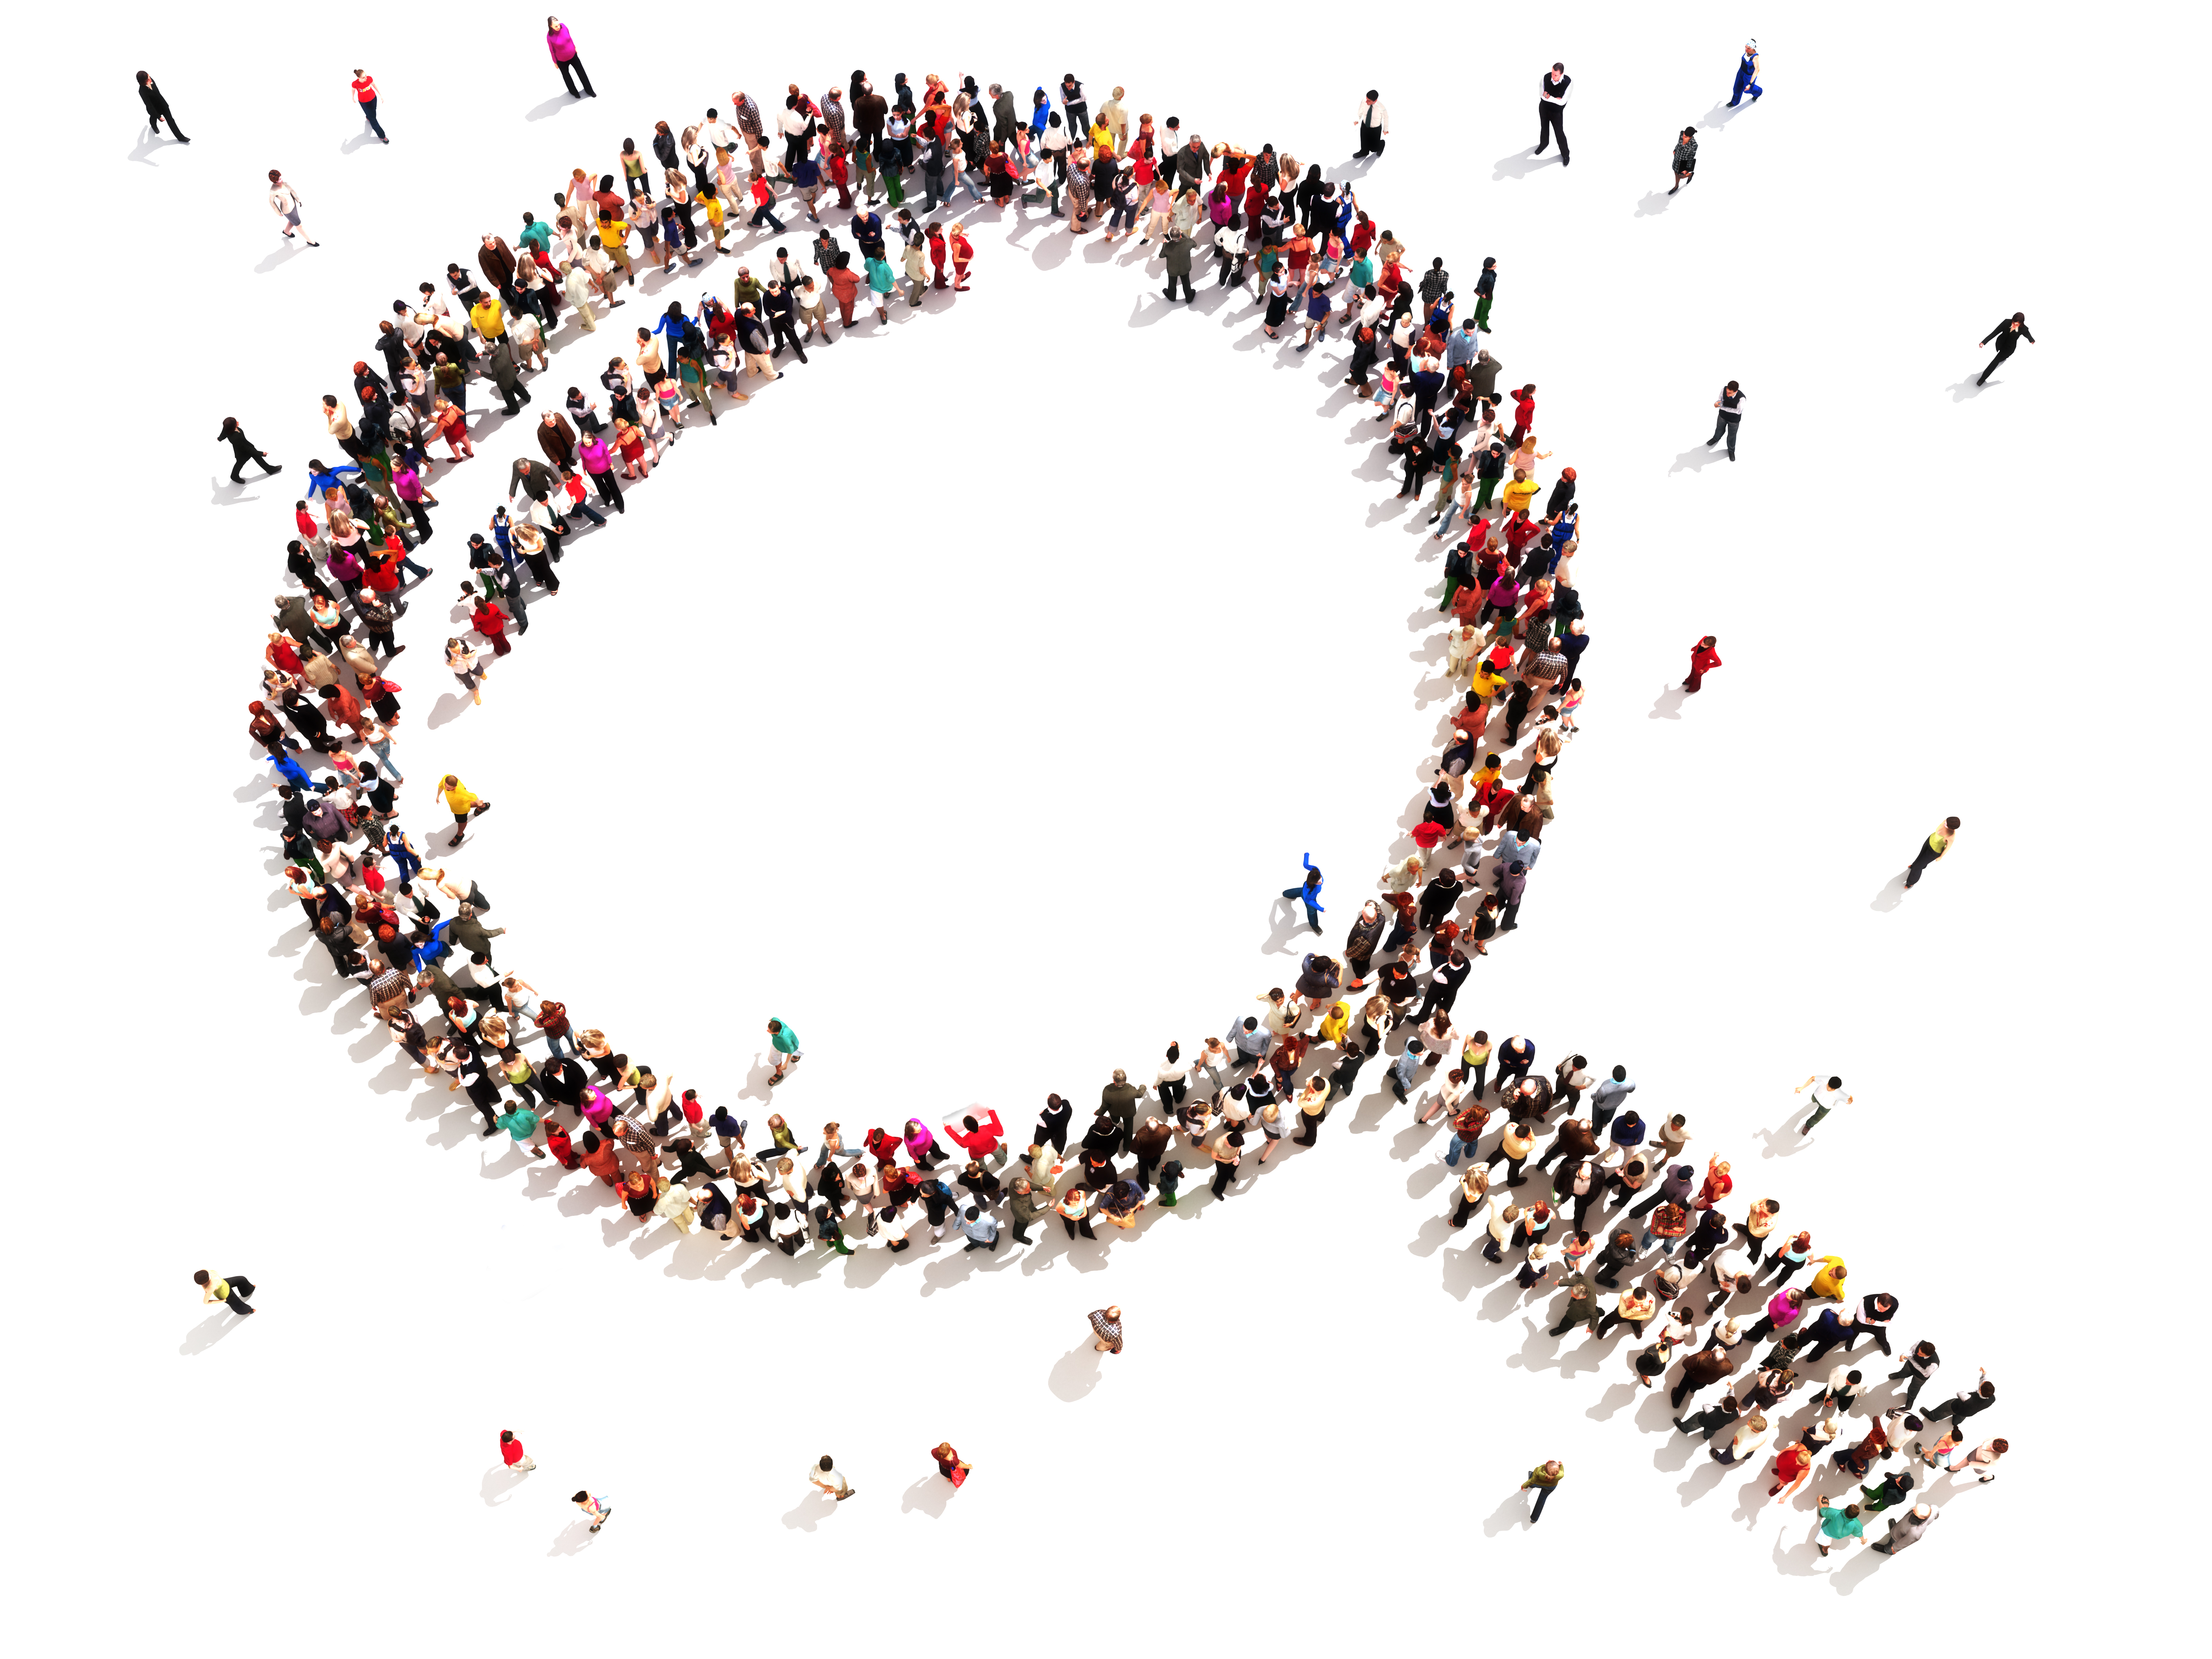 Large group of people in the shape of a magnifying glass.